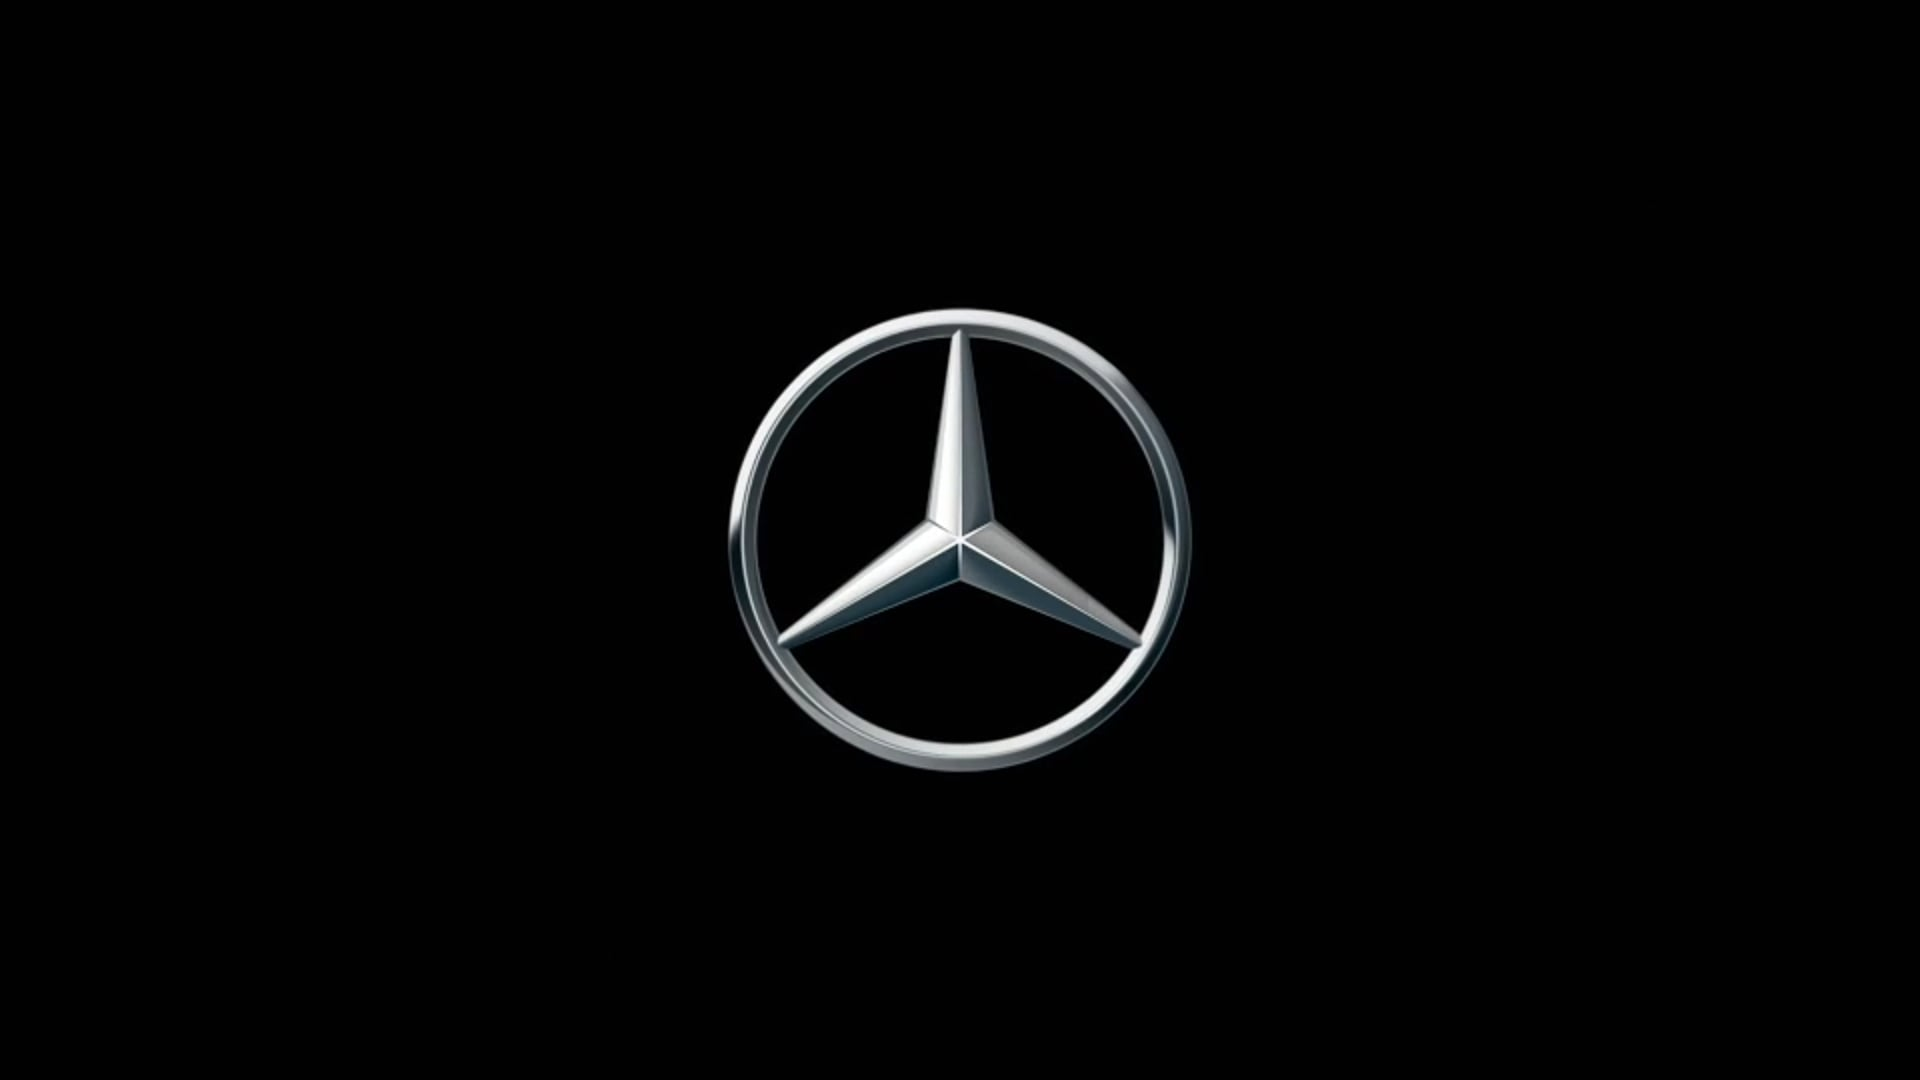 Music and Sound Design for the Mercedes Benz Product film